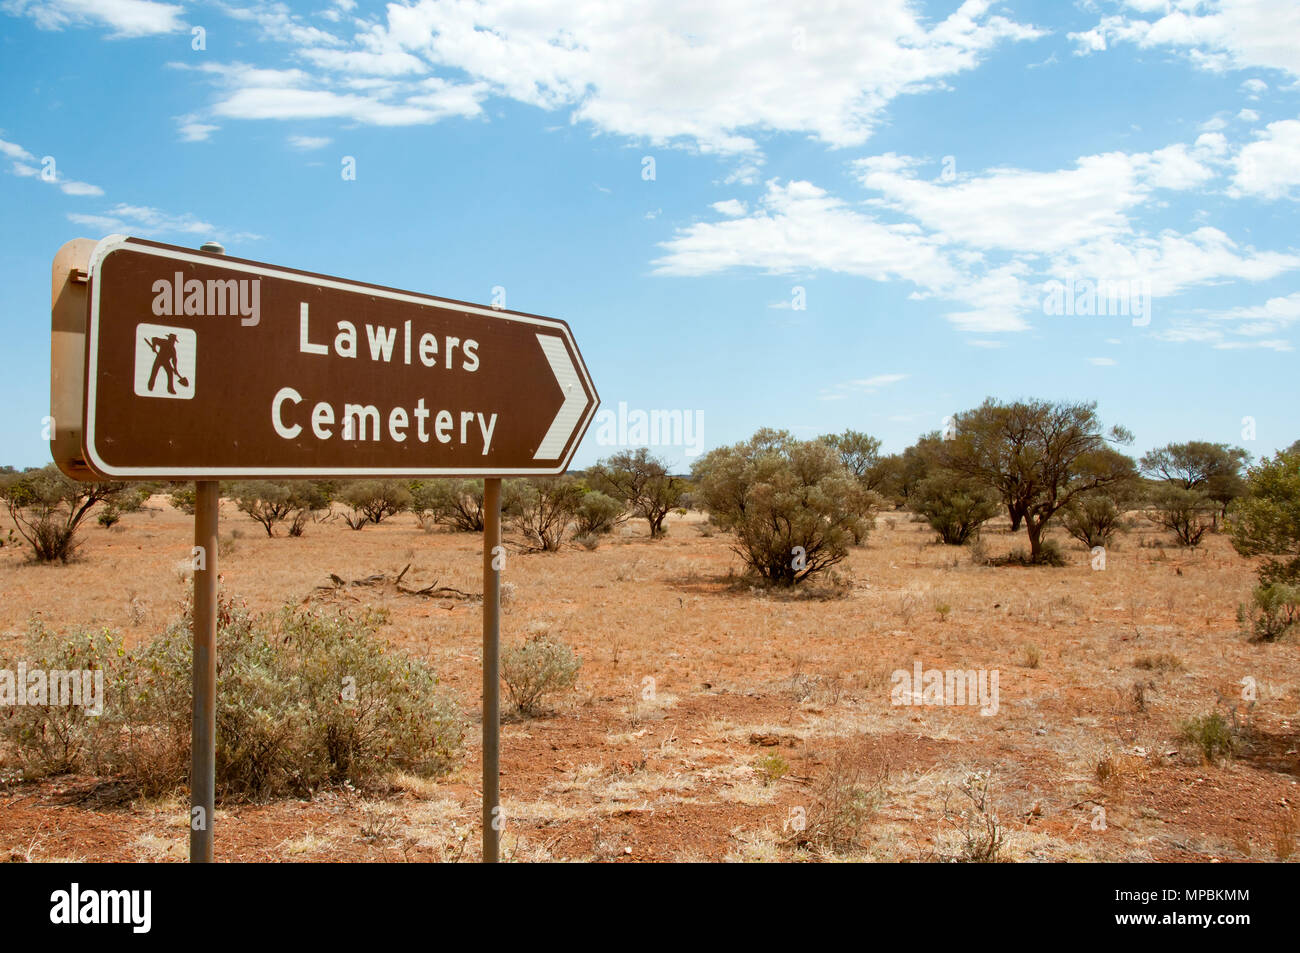 Lawler's Cemetery - Agnew - Western Australia - Stock Image